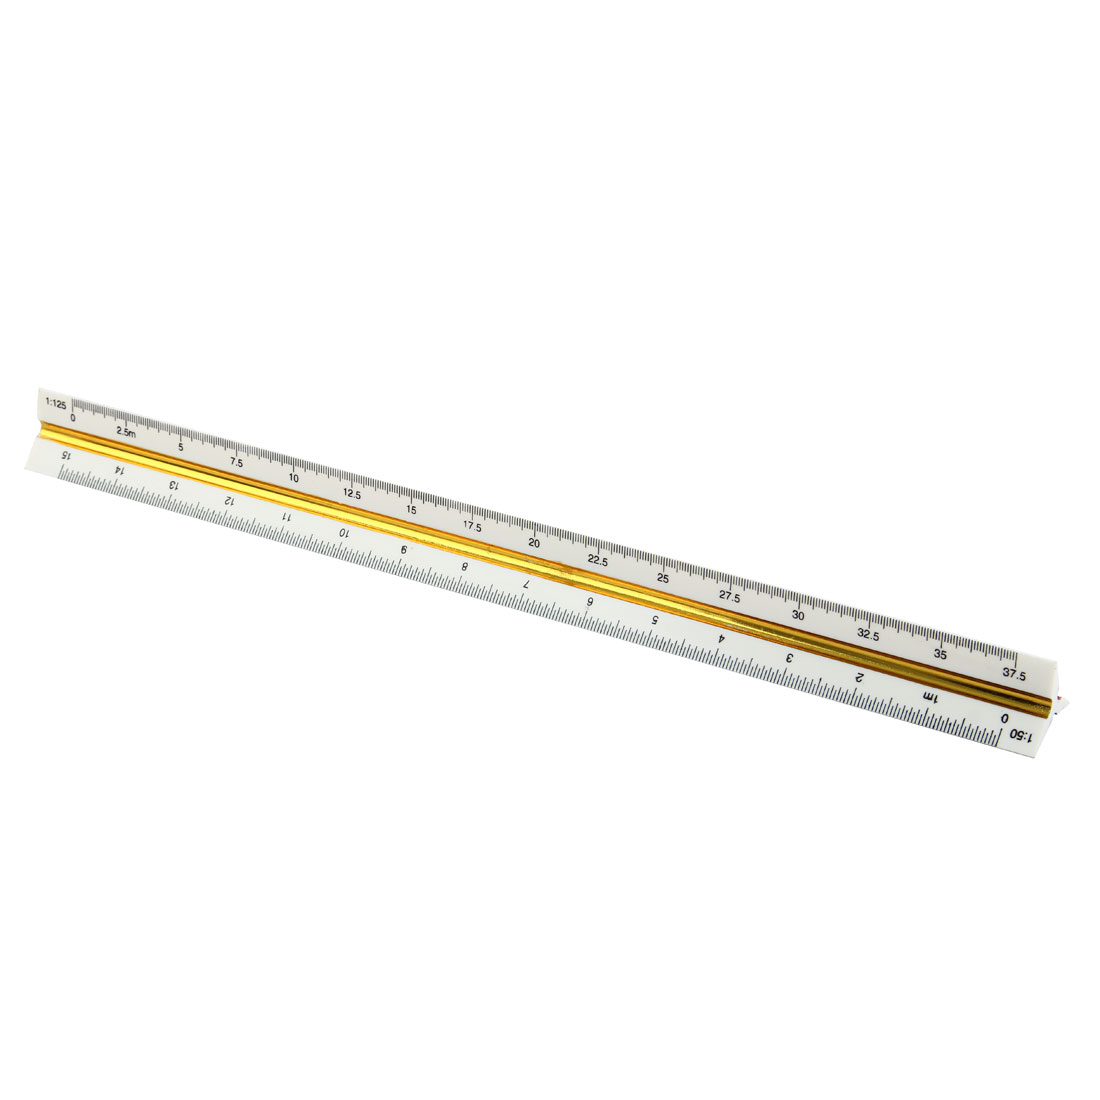 1:20 1:25 1:50 1:75 1:100 1:125 Plastic Triangular Scale Ruler